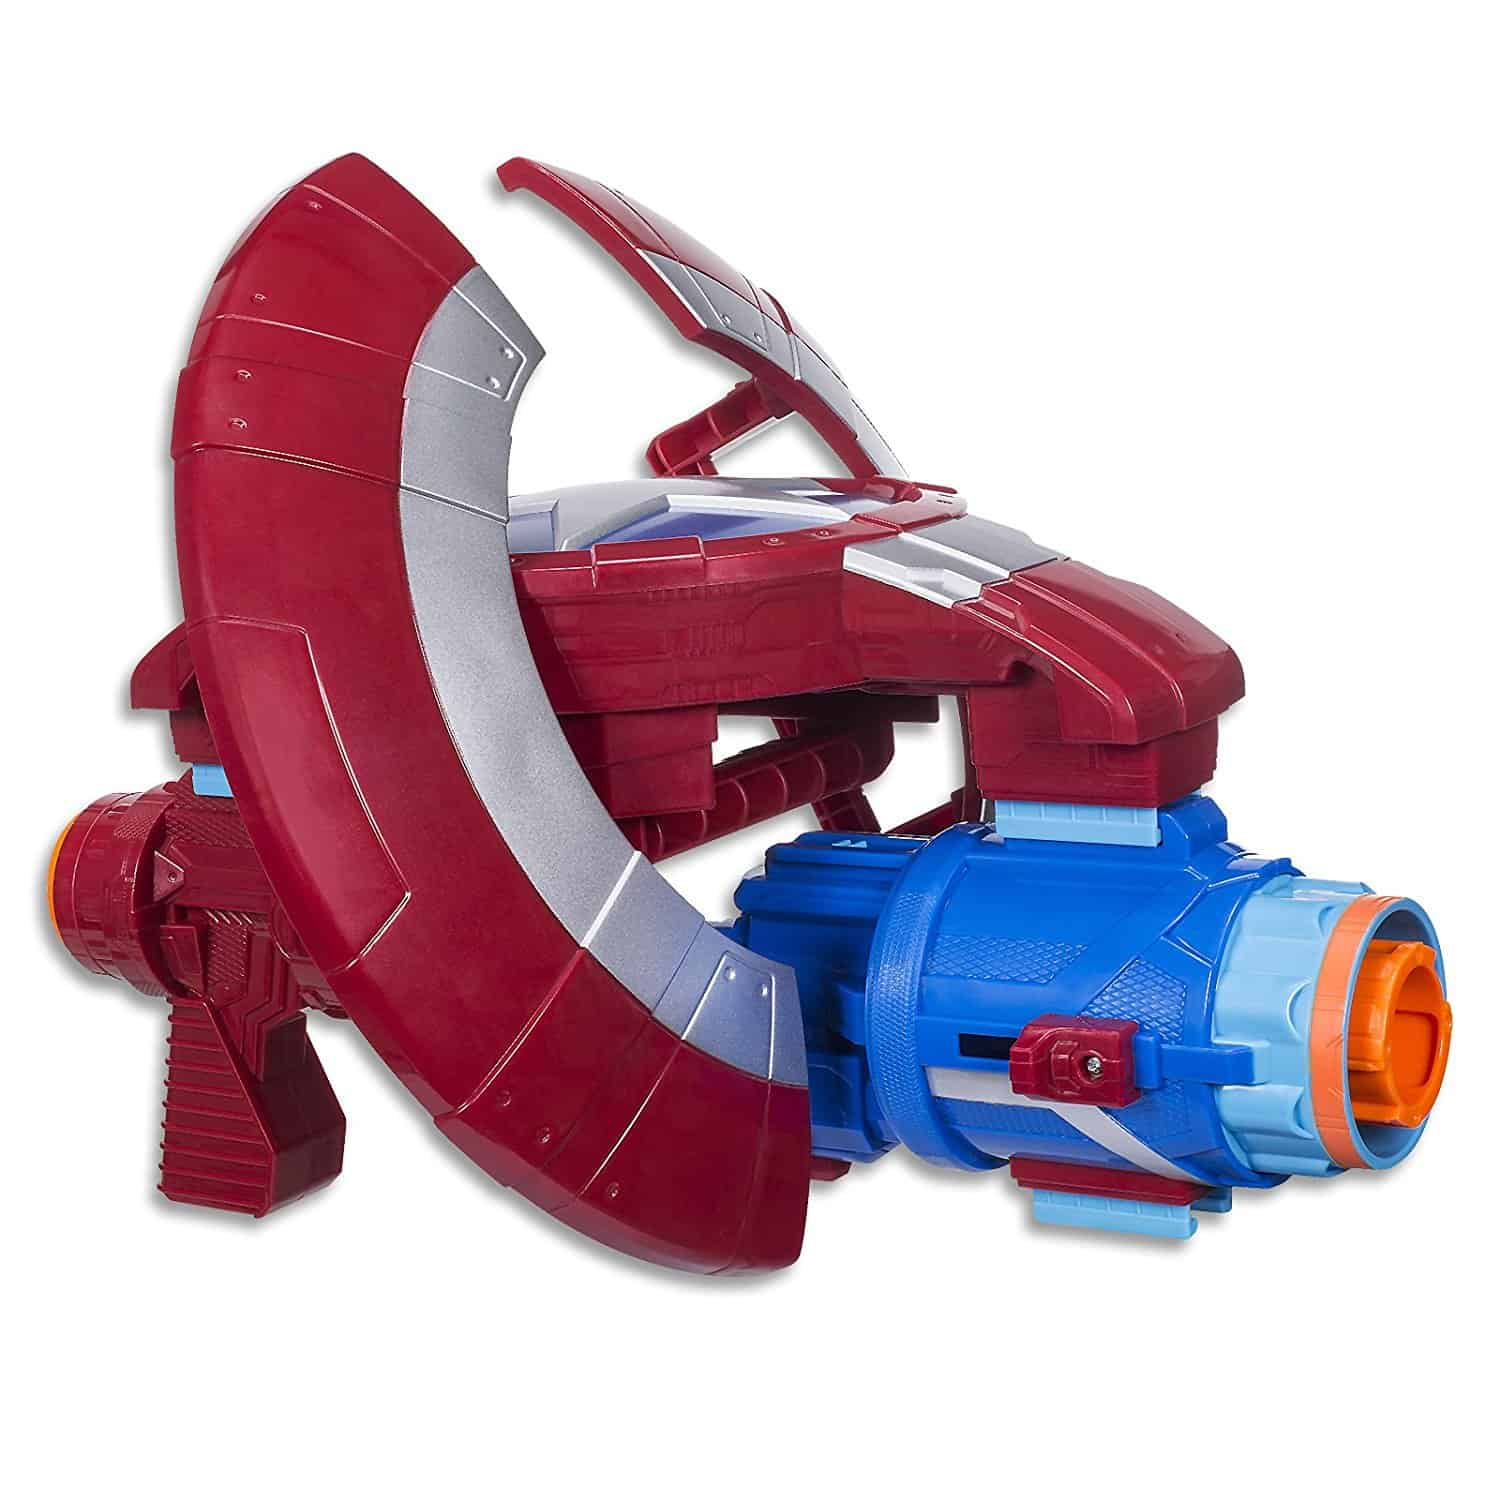 Must-Have Avengers toys and products - nerf assembler gear